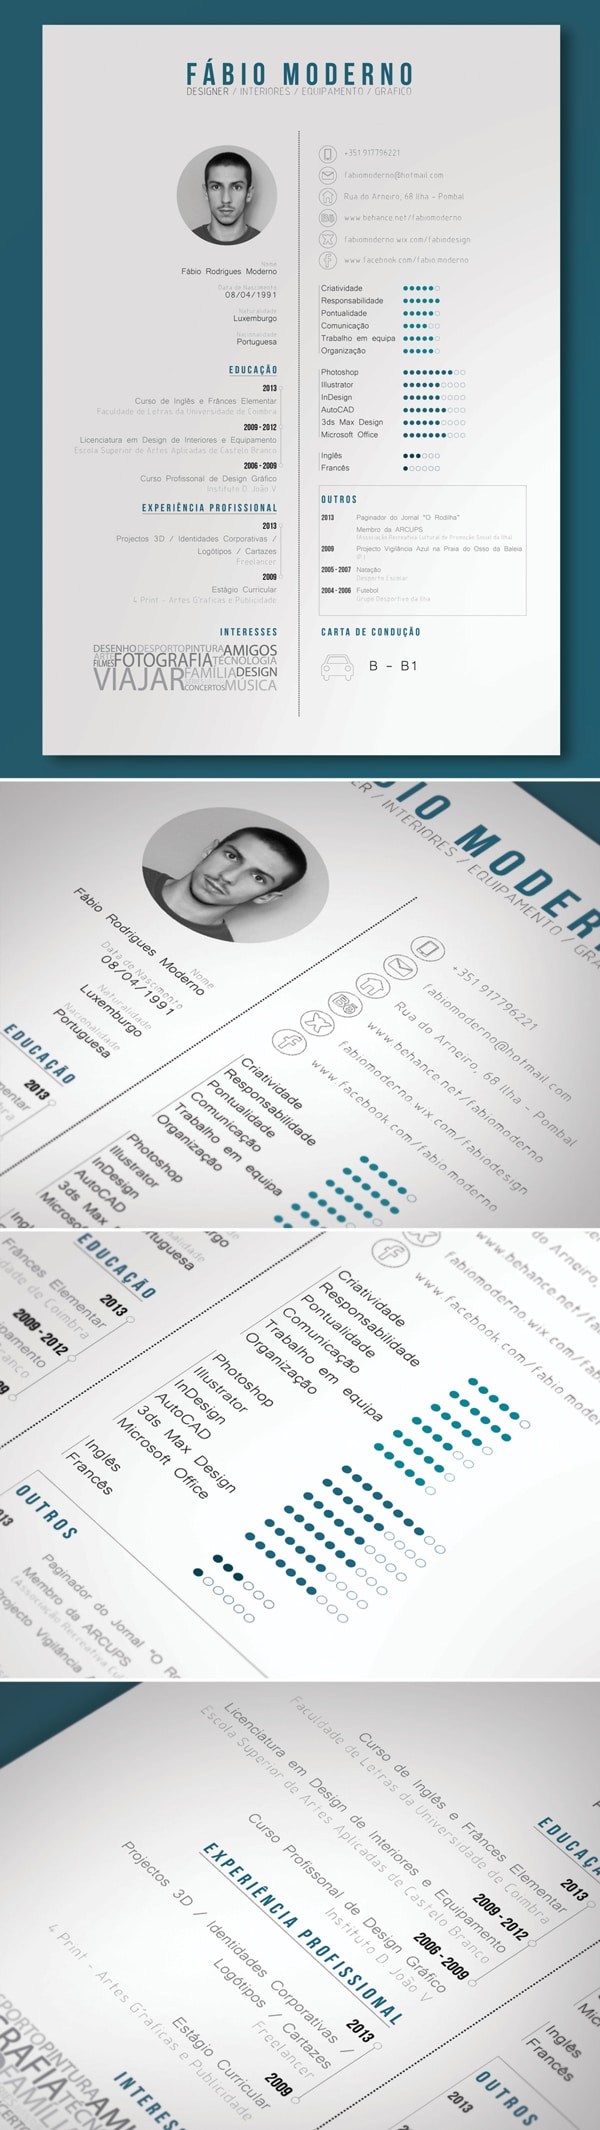 55 amazing graphic design resume templates to win jobs curriculum vitae graphic design resume